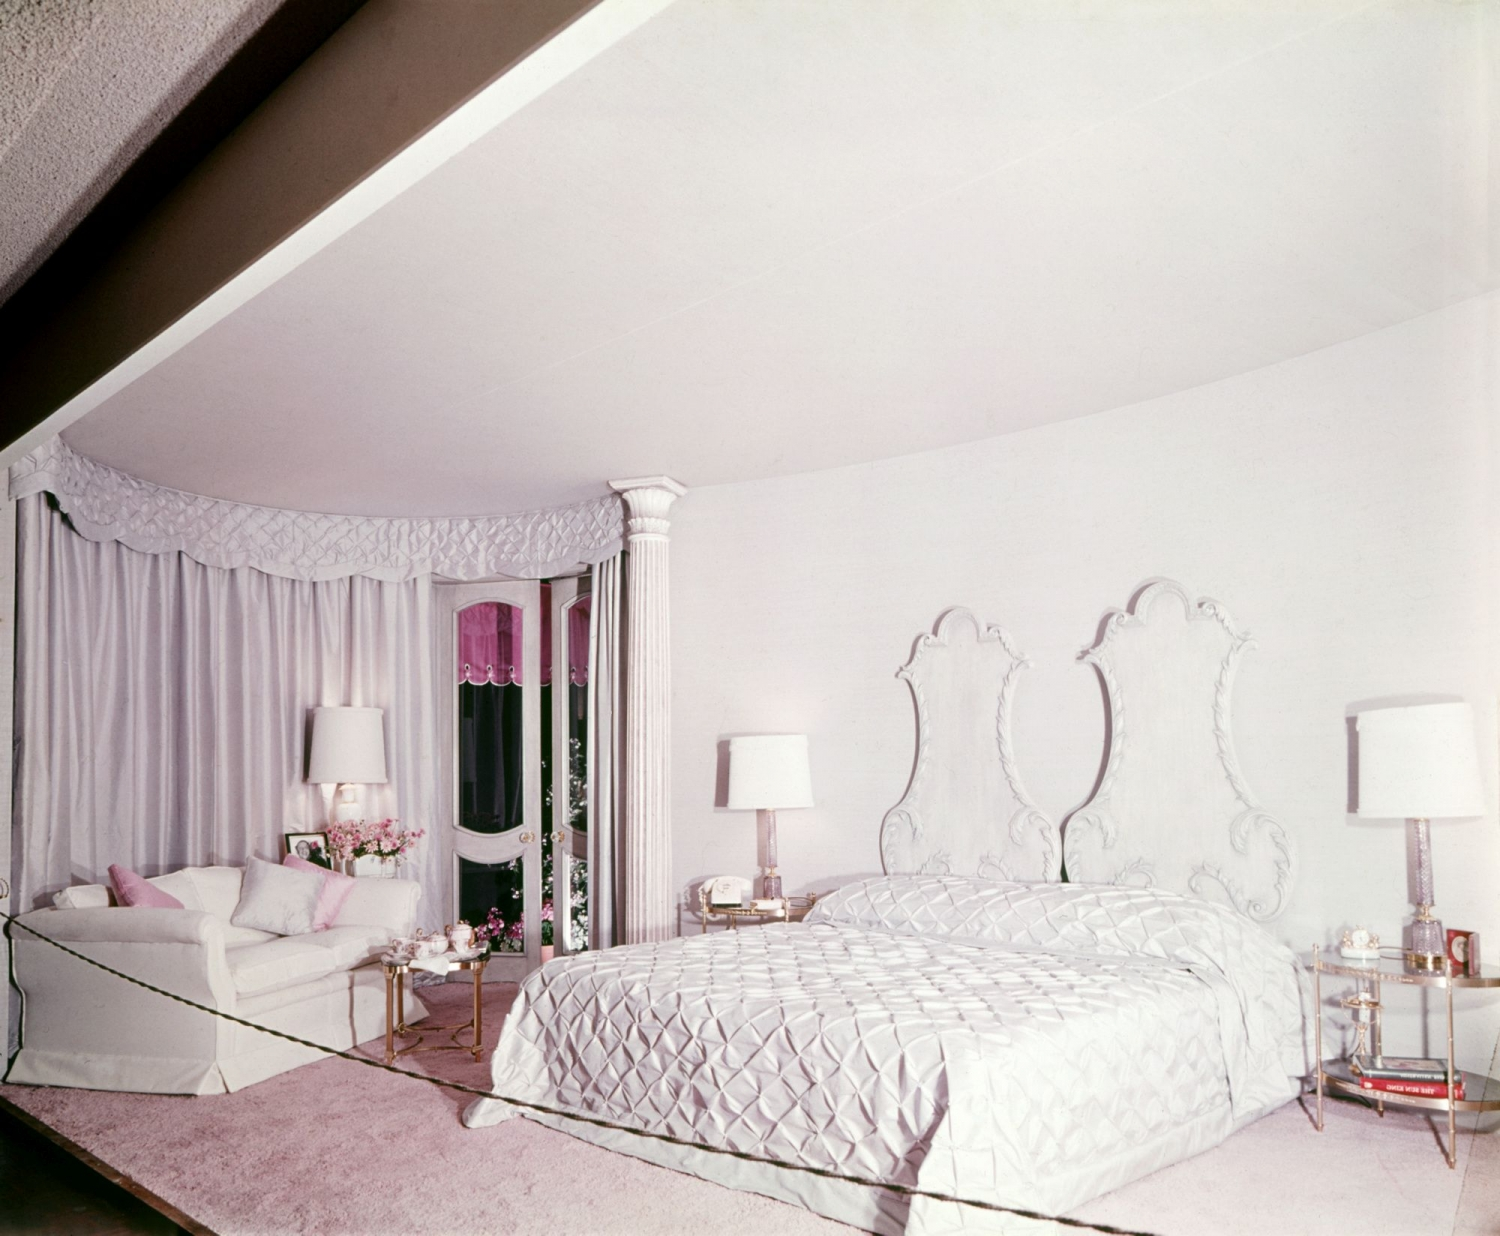 Decor Associates: 'A bedroom for Mrs Marcel Dekyvere'